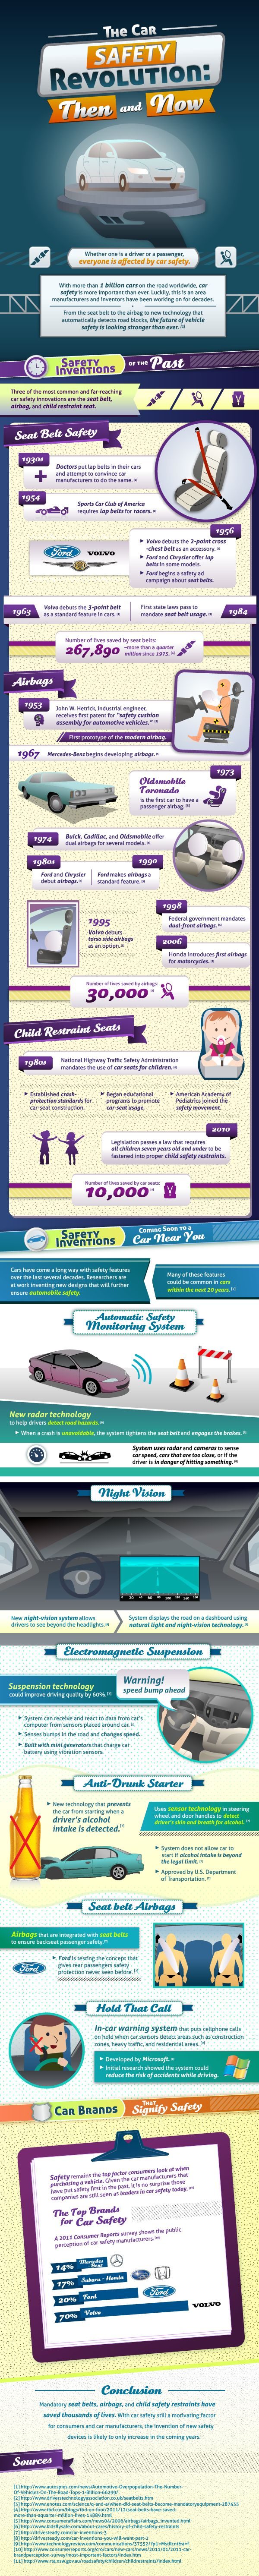 Whether one is a driver or a passenger, everyone is affected by a car safety.